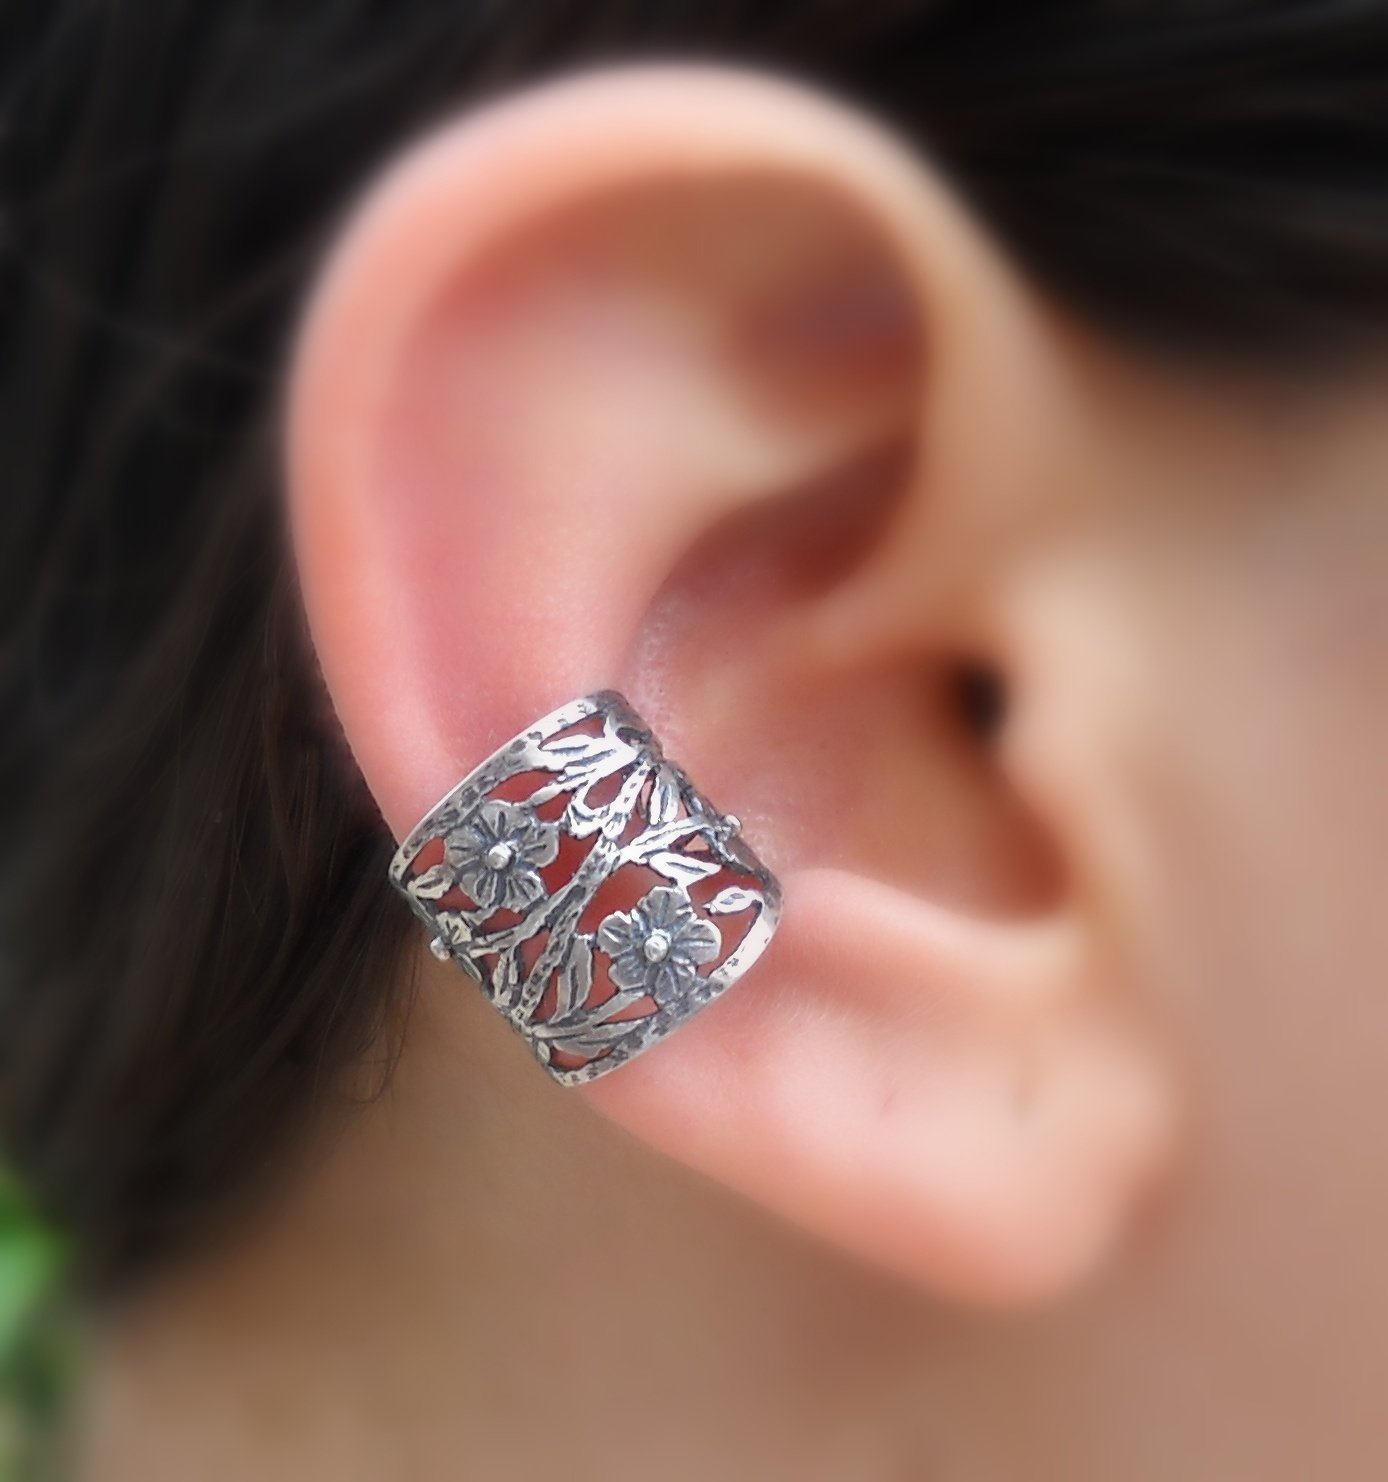 Ear Cuff - Fake Piercing - Fake Conch Piercing - Non Pierced Conch Cuff - Sterling Silver Flower Ear Cuff